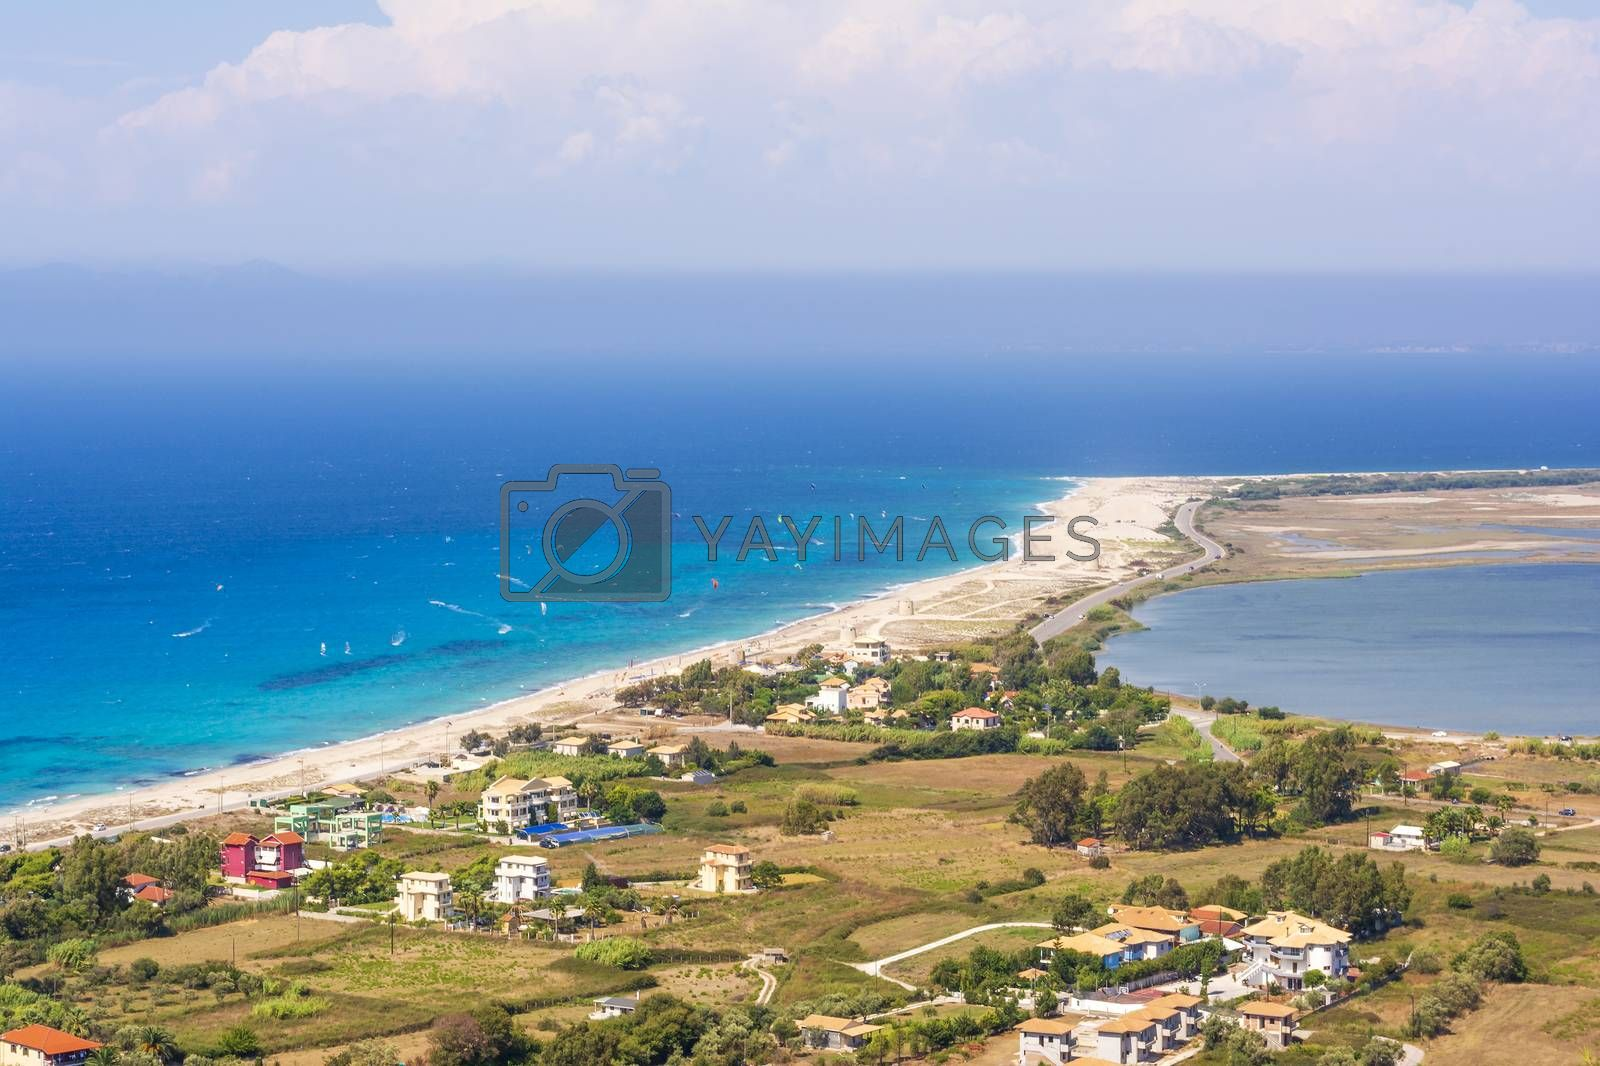 Ai Yiannis, Mili is a long sandy beach on the island of Lefkada, Greece. Preferred by wind and kite surfers. It covers a stretch of 4.5 km and the waters are turquoise coloured.